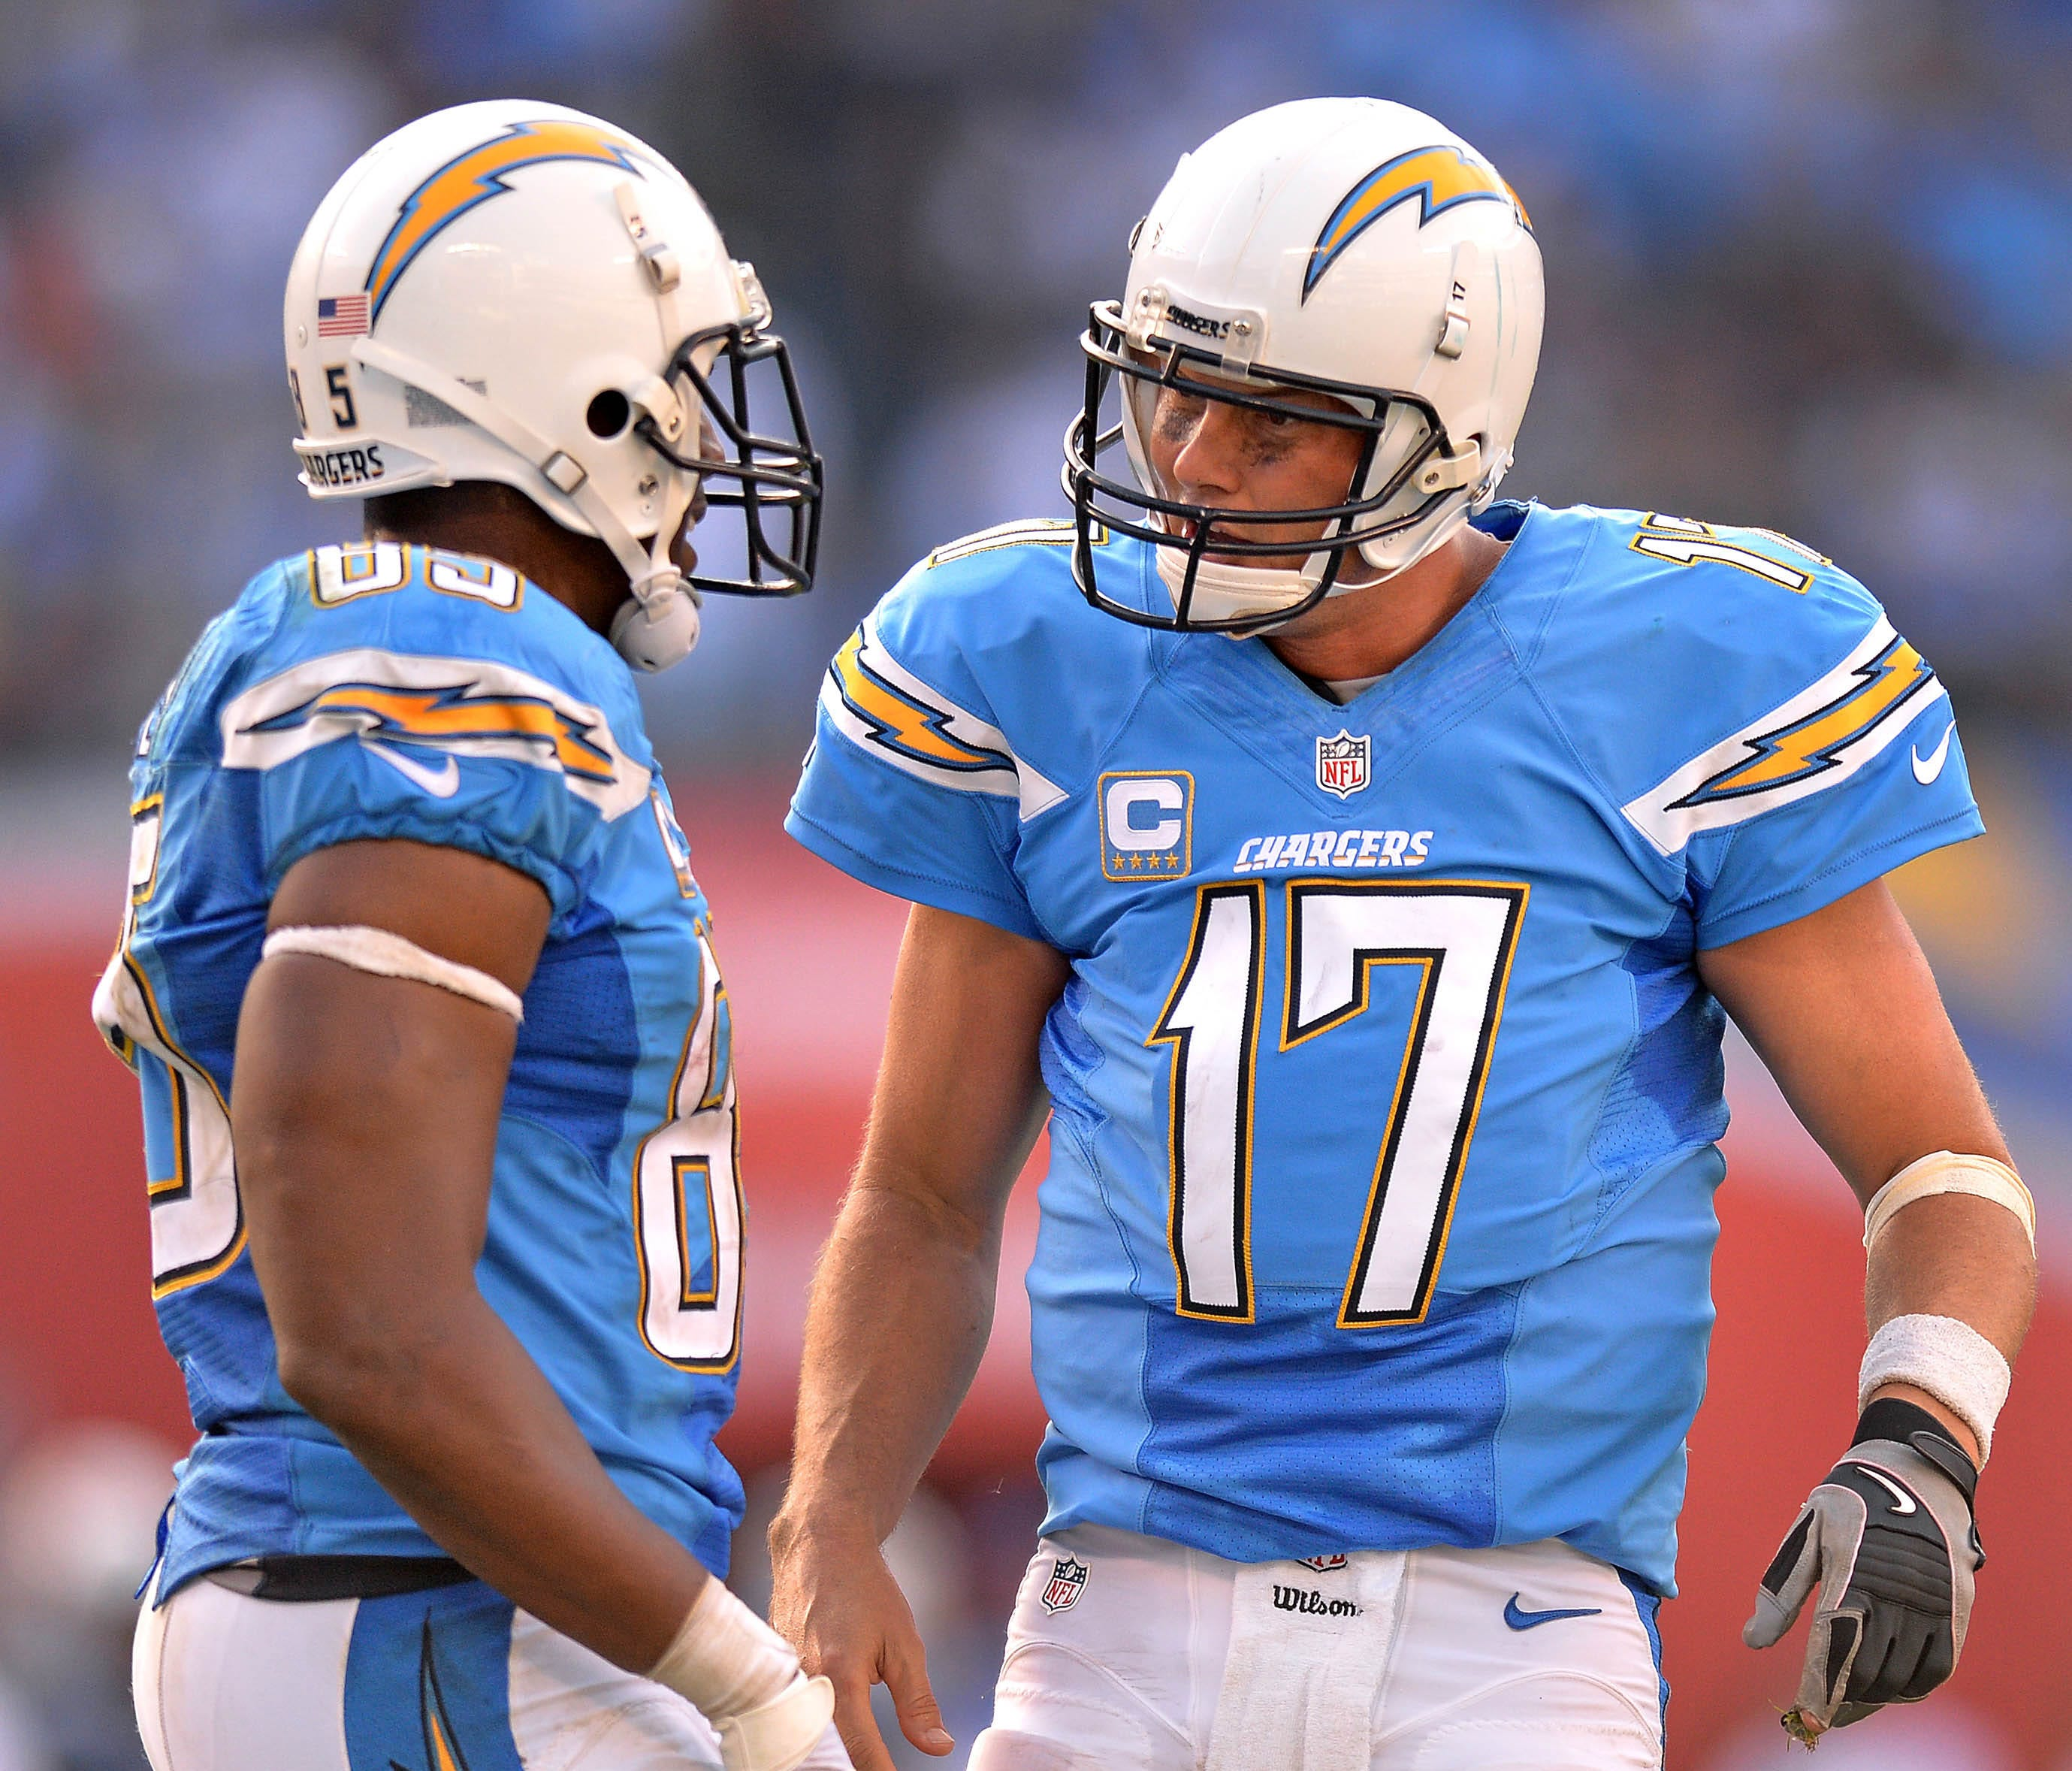 Chargers quarterback Philip Rivers (17) talks to tight end Antonio Gates (85) during the third quarter against the Tennessee Titans at Qualcomm Stadium.